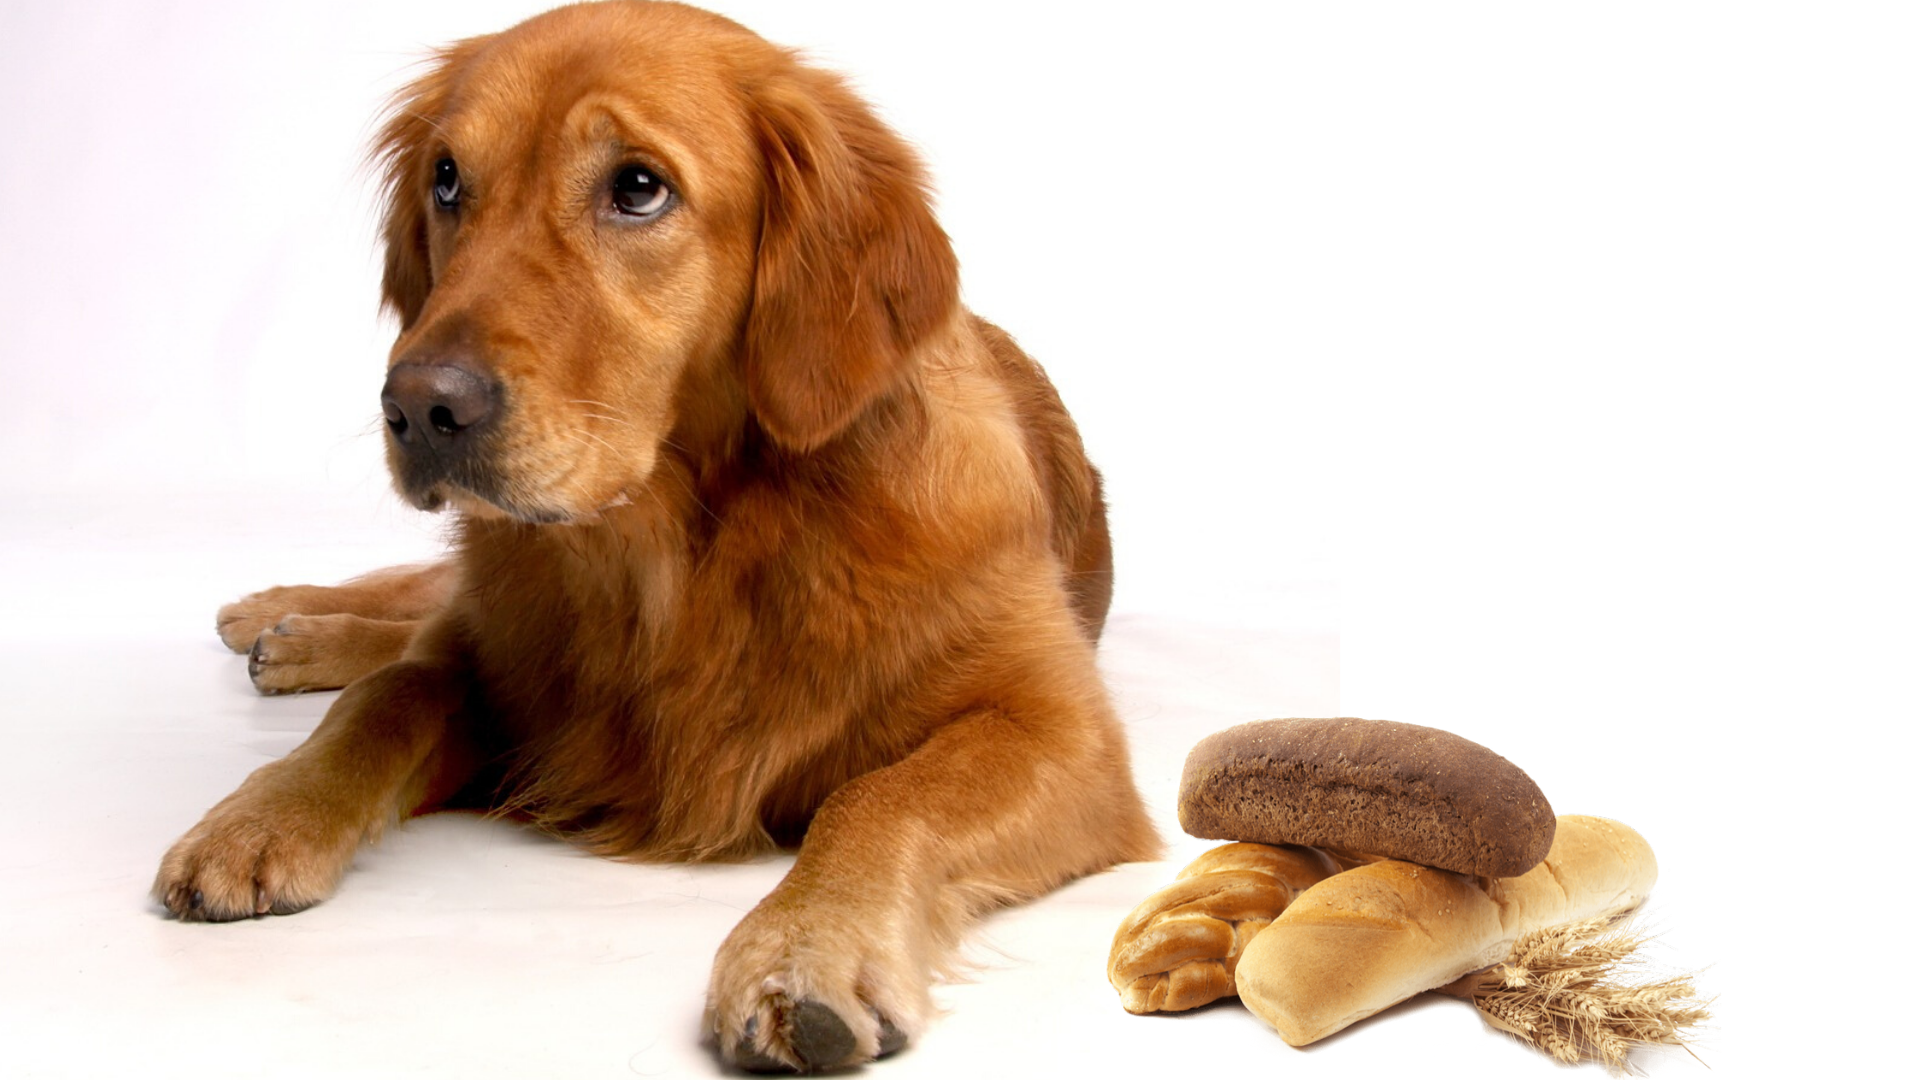 Can Golden Retrievers Eat Bread